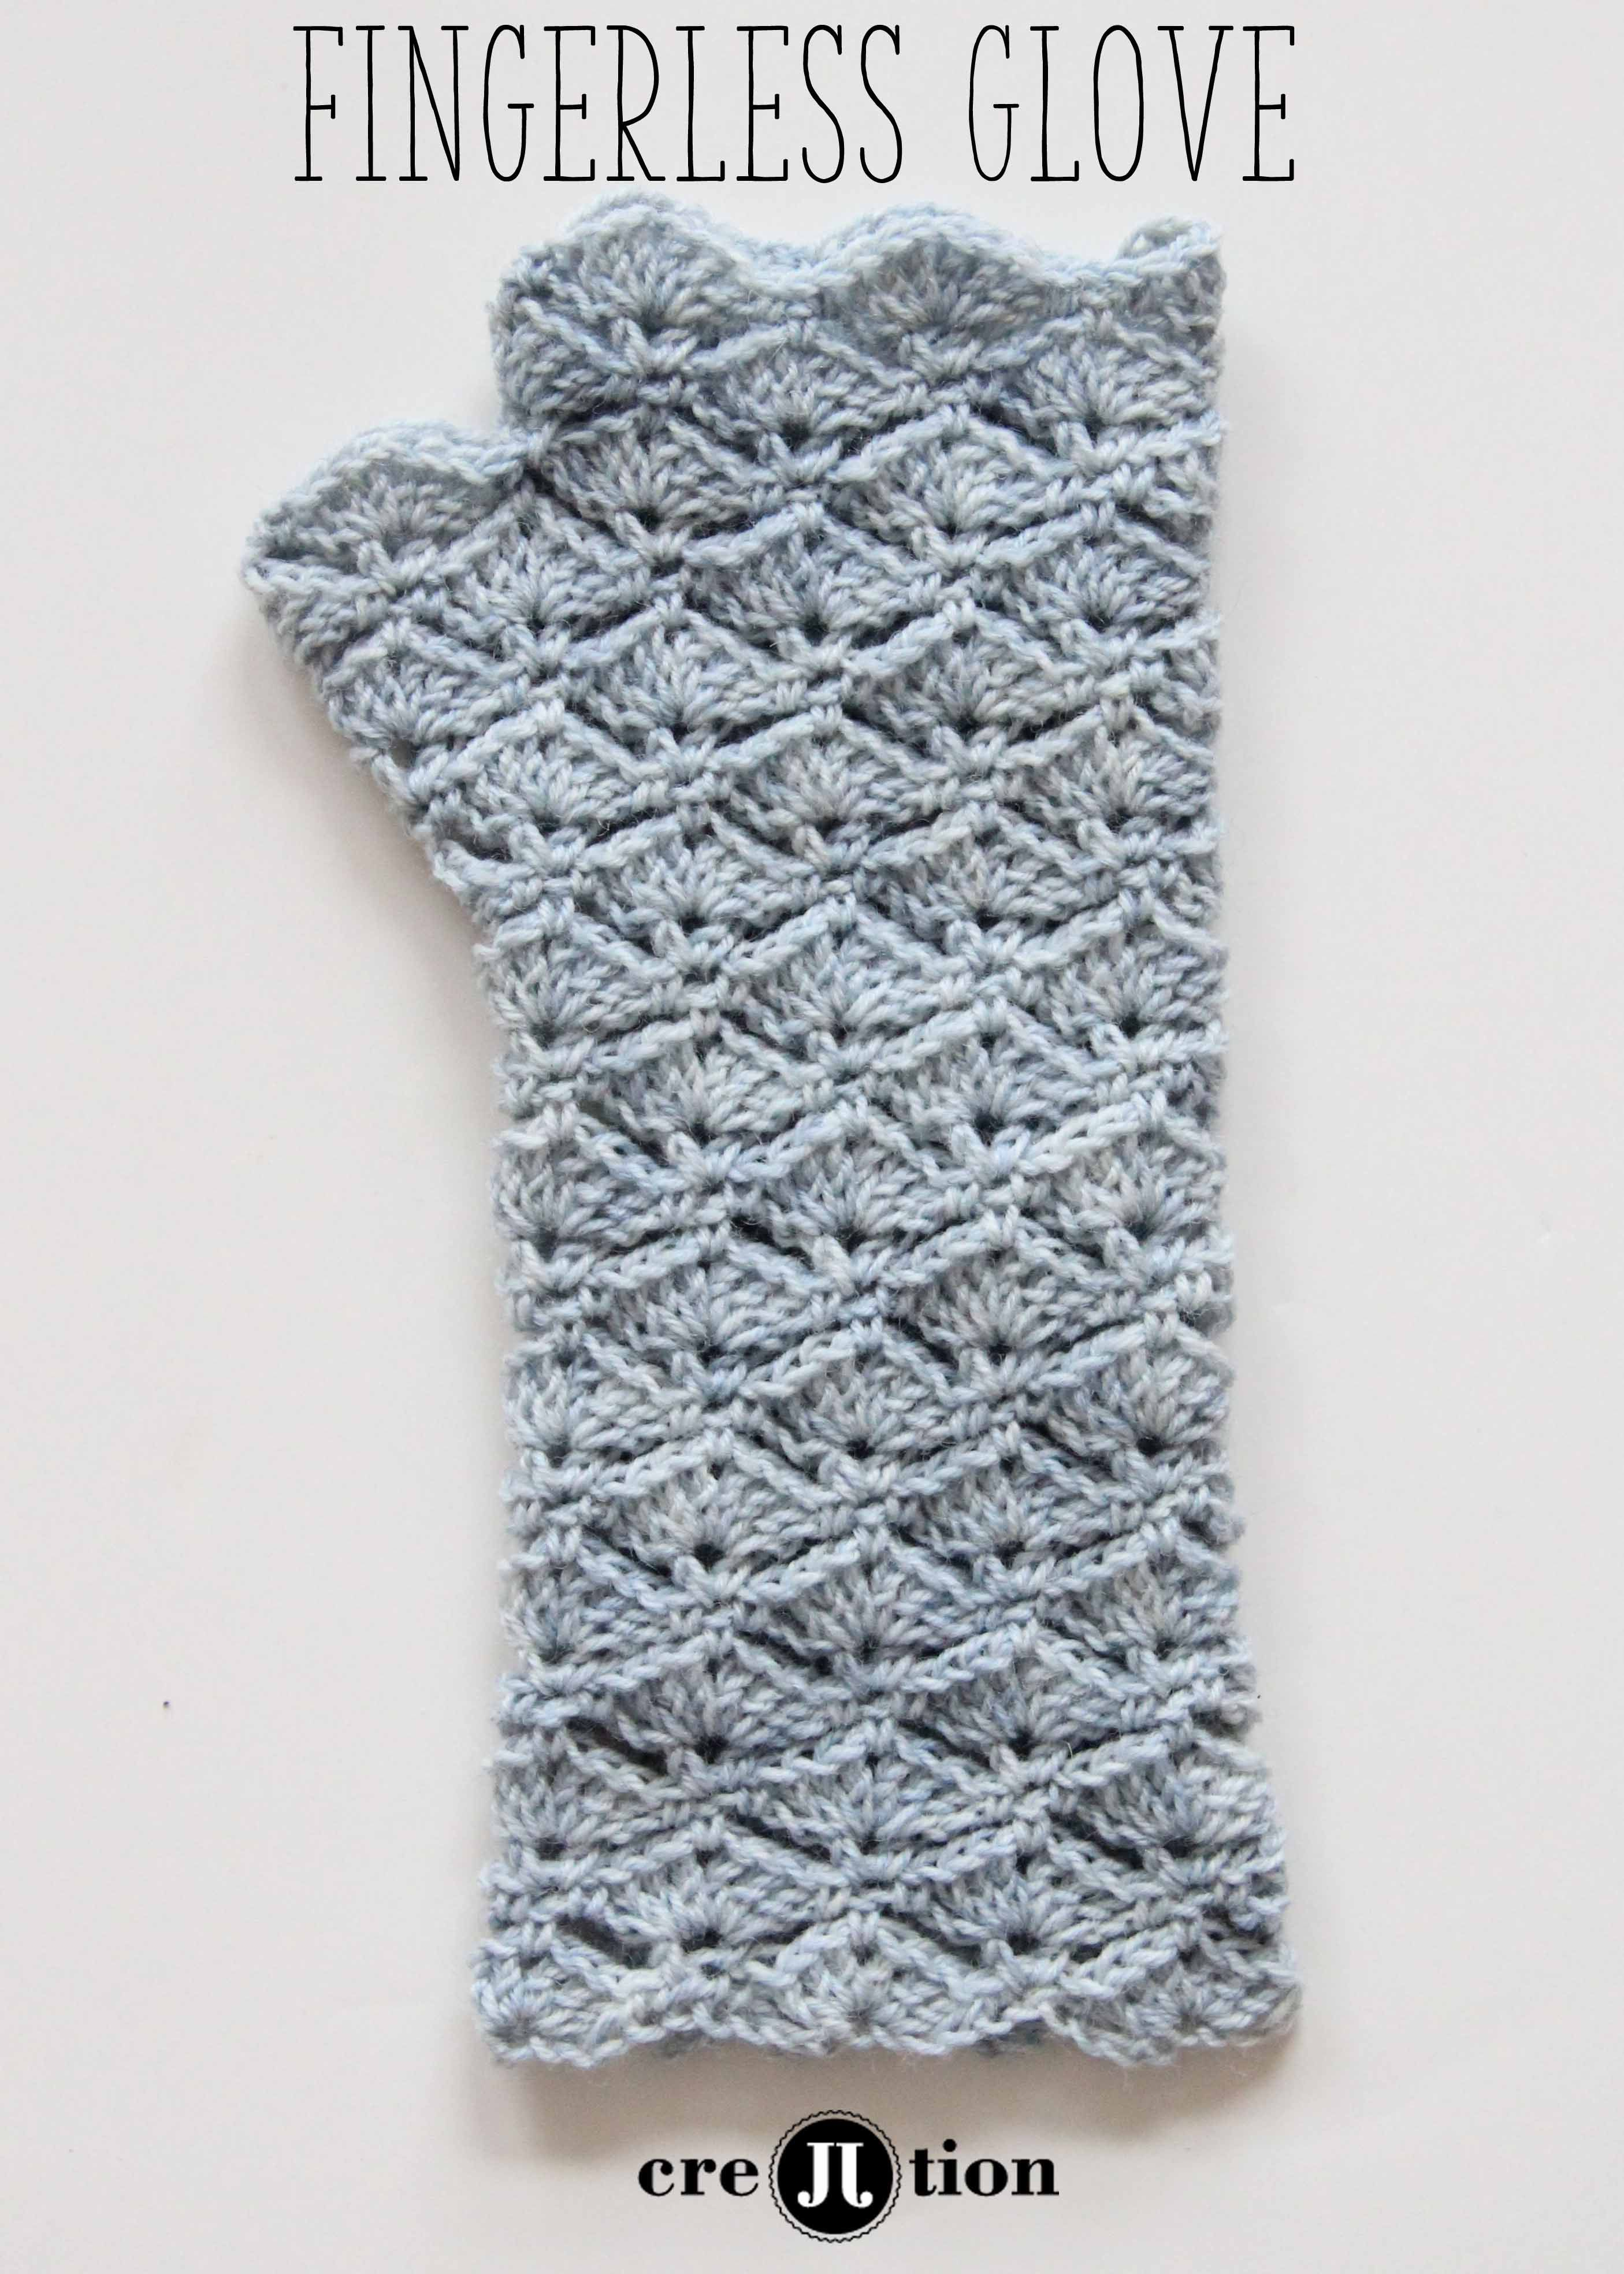 Fingerless glove | Projects to try | Pinterest | Guantes sin dedos ...